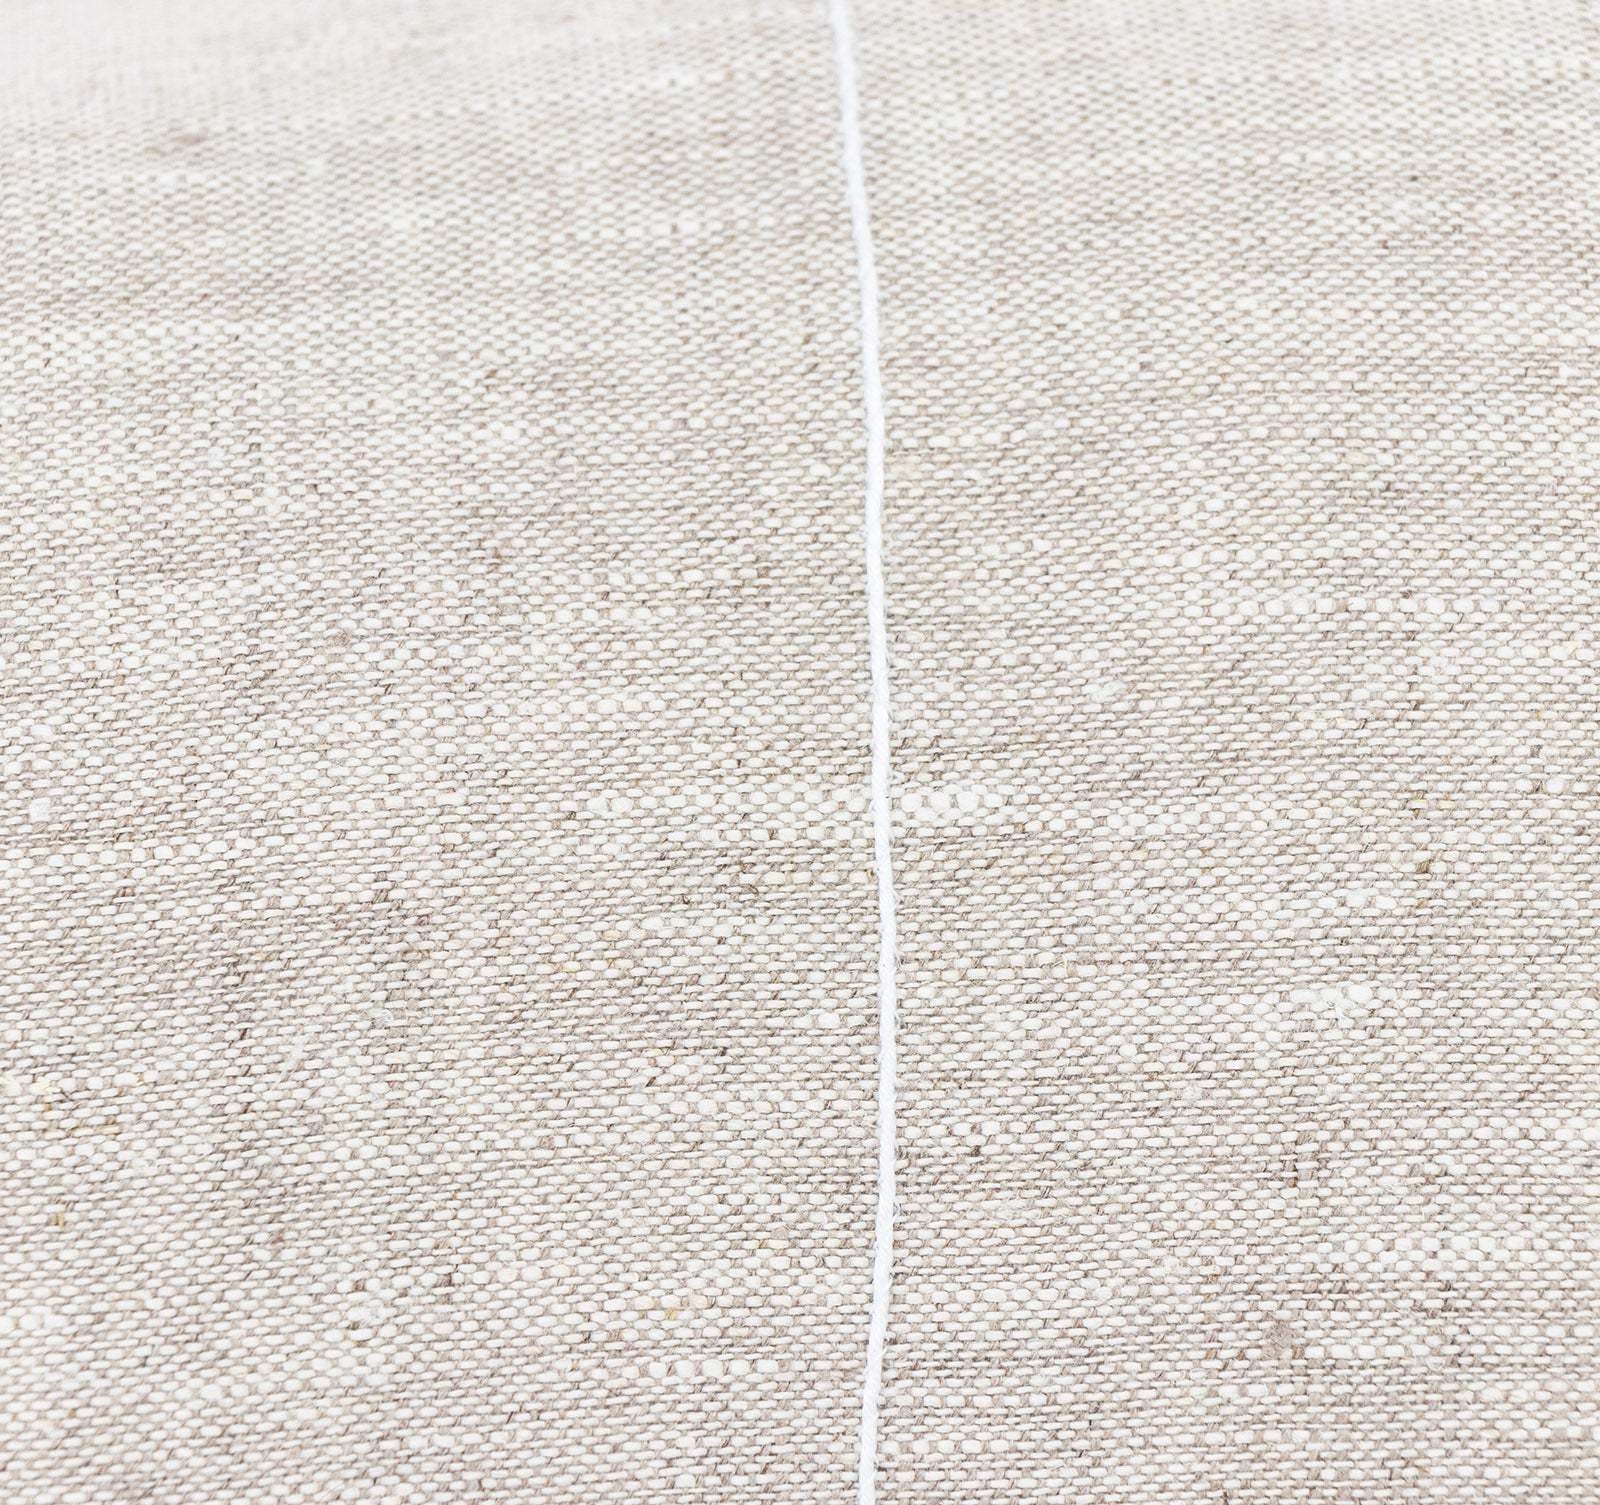 Embroidered white stripe on handmade linen cushion cover